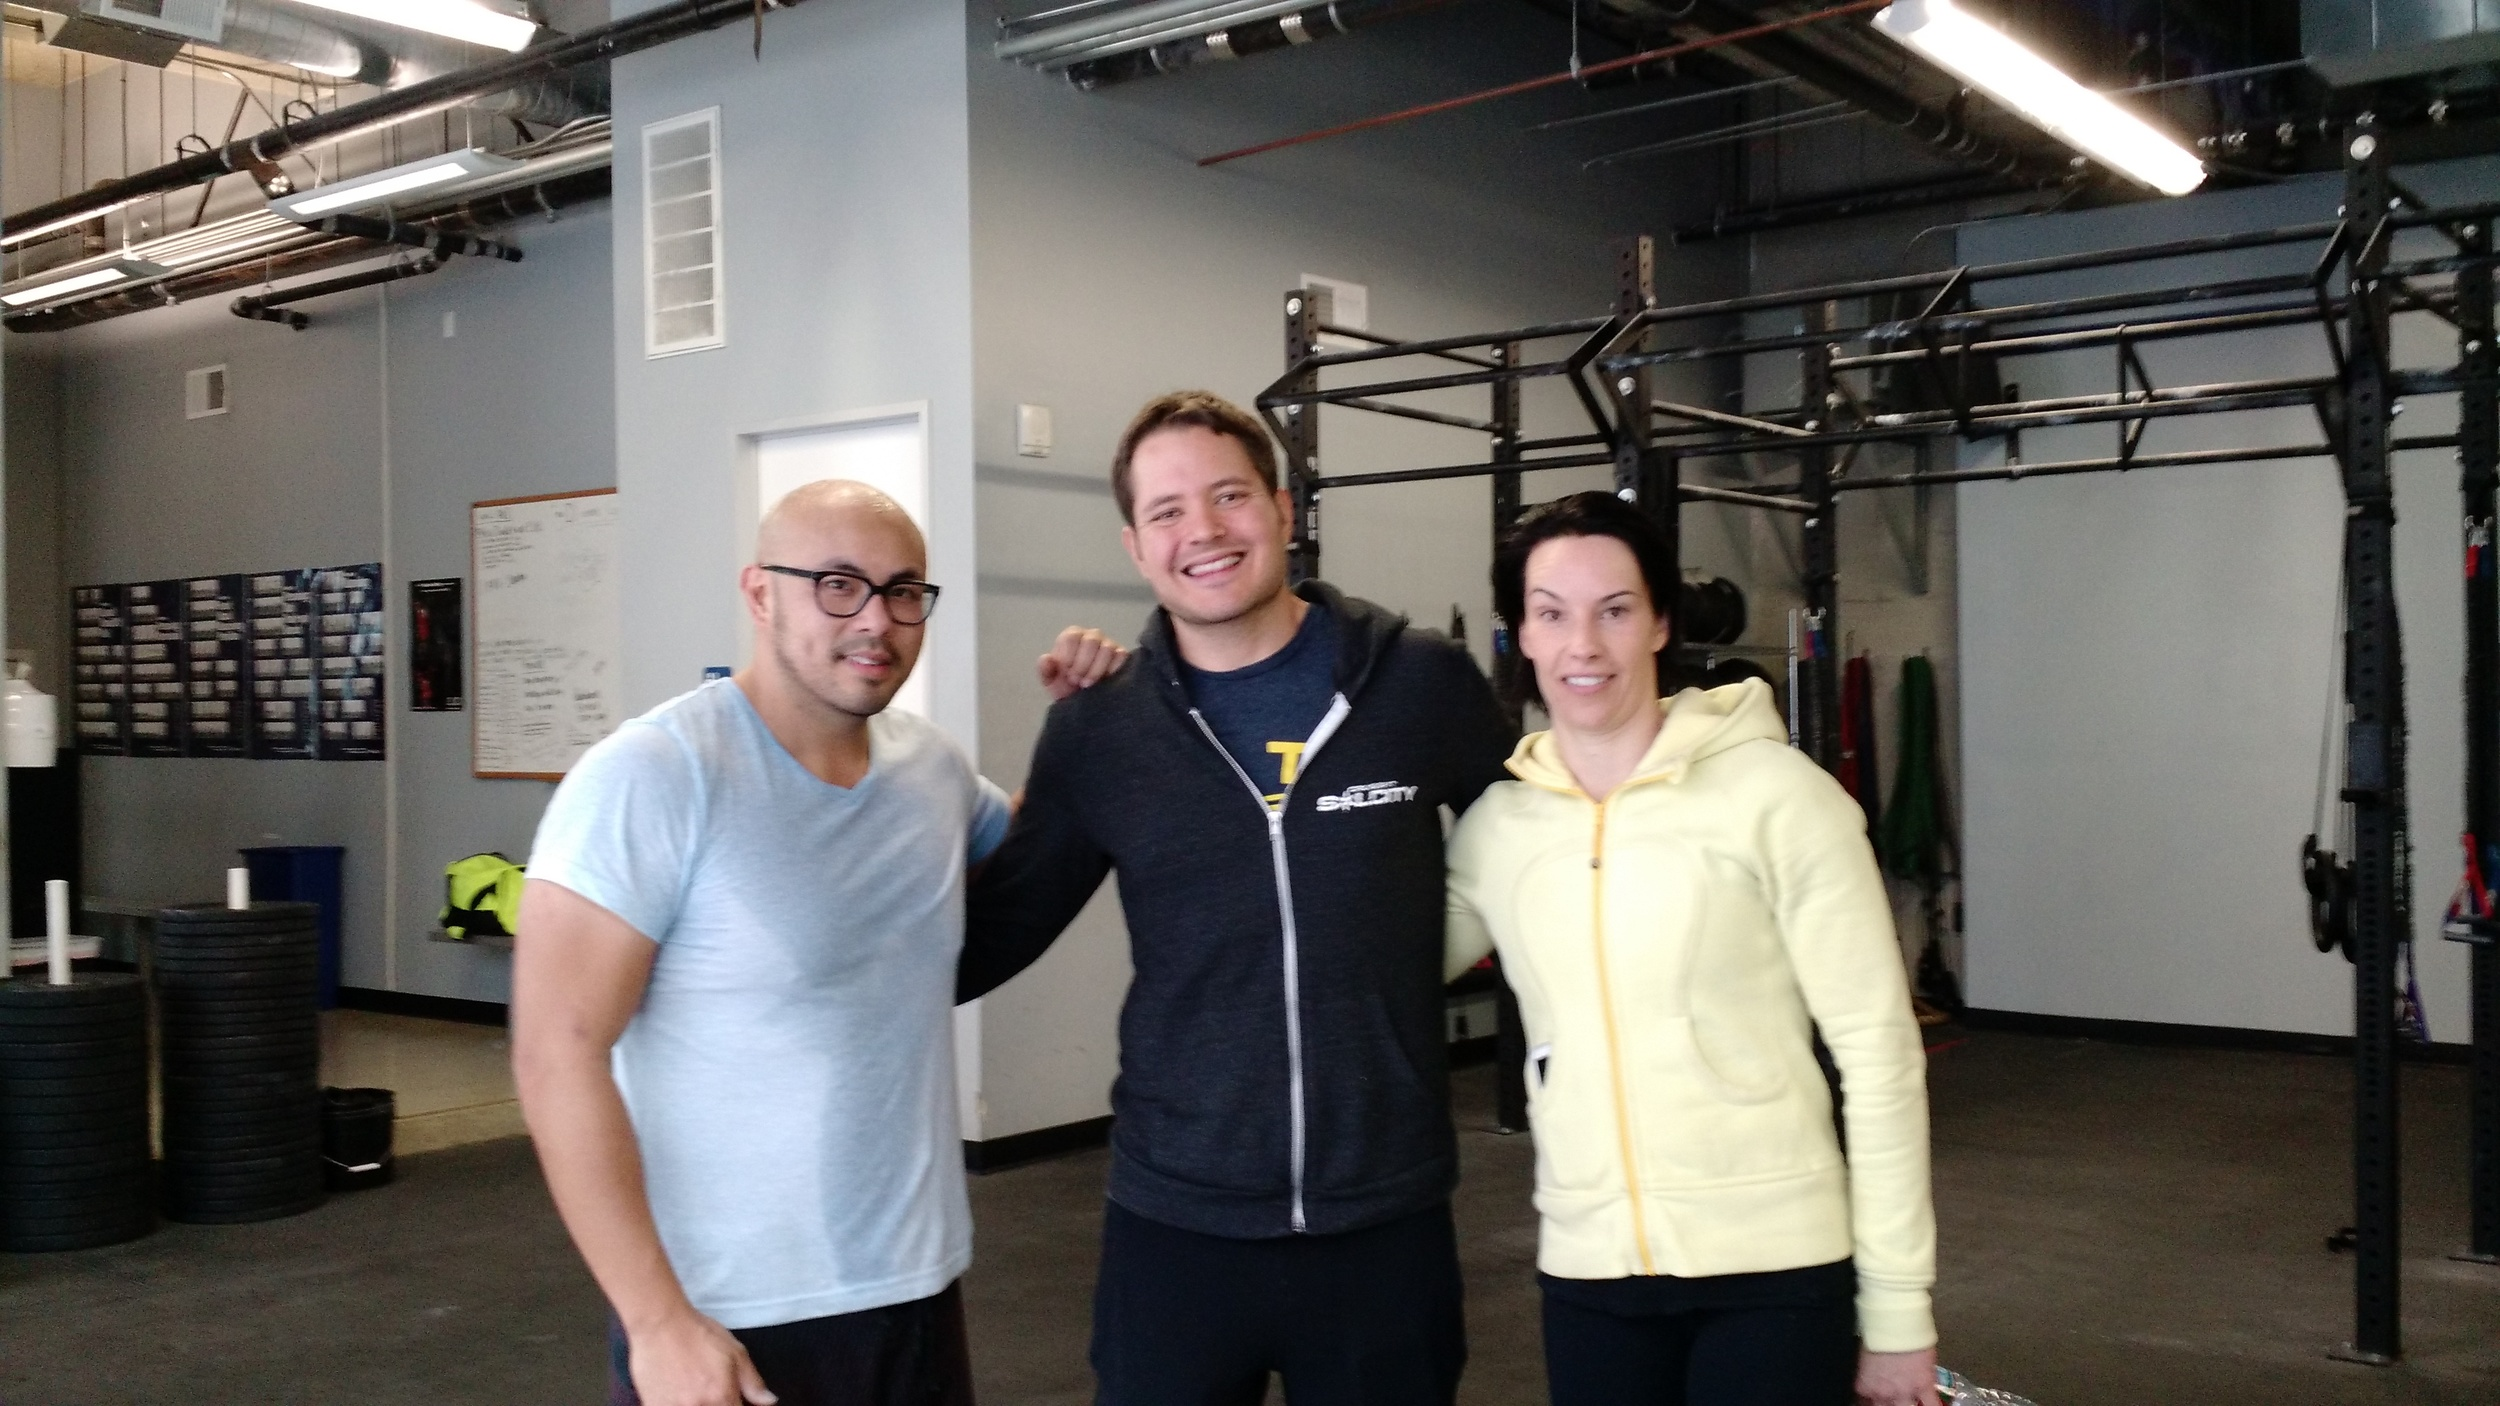 Andrew Manser and CrossFit SolCity welcomes CFSV with open arms! The Hollywood CrossFit community is bright and sunny. Thank you Andrew for letting Silicon Valley WOD in the SolCity!